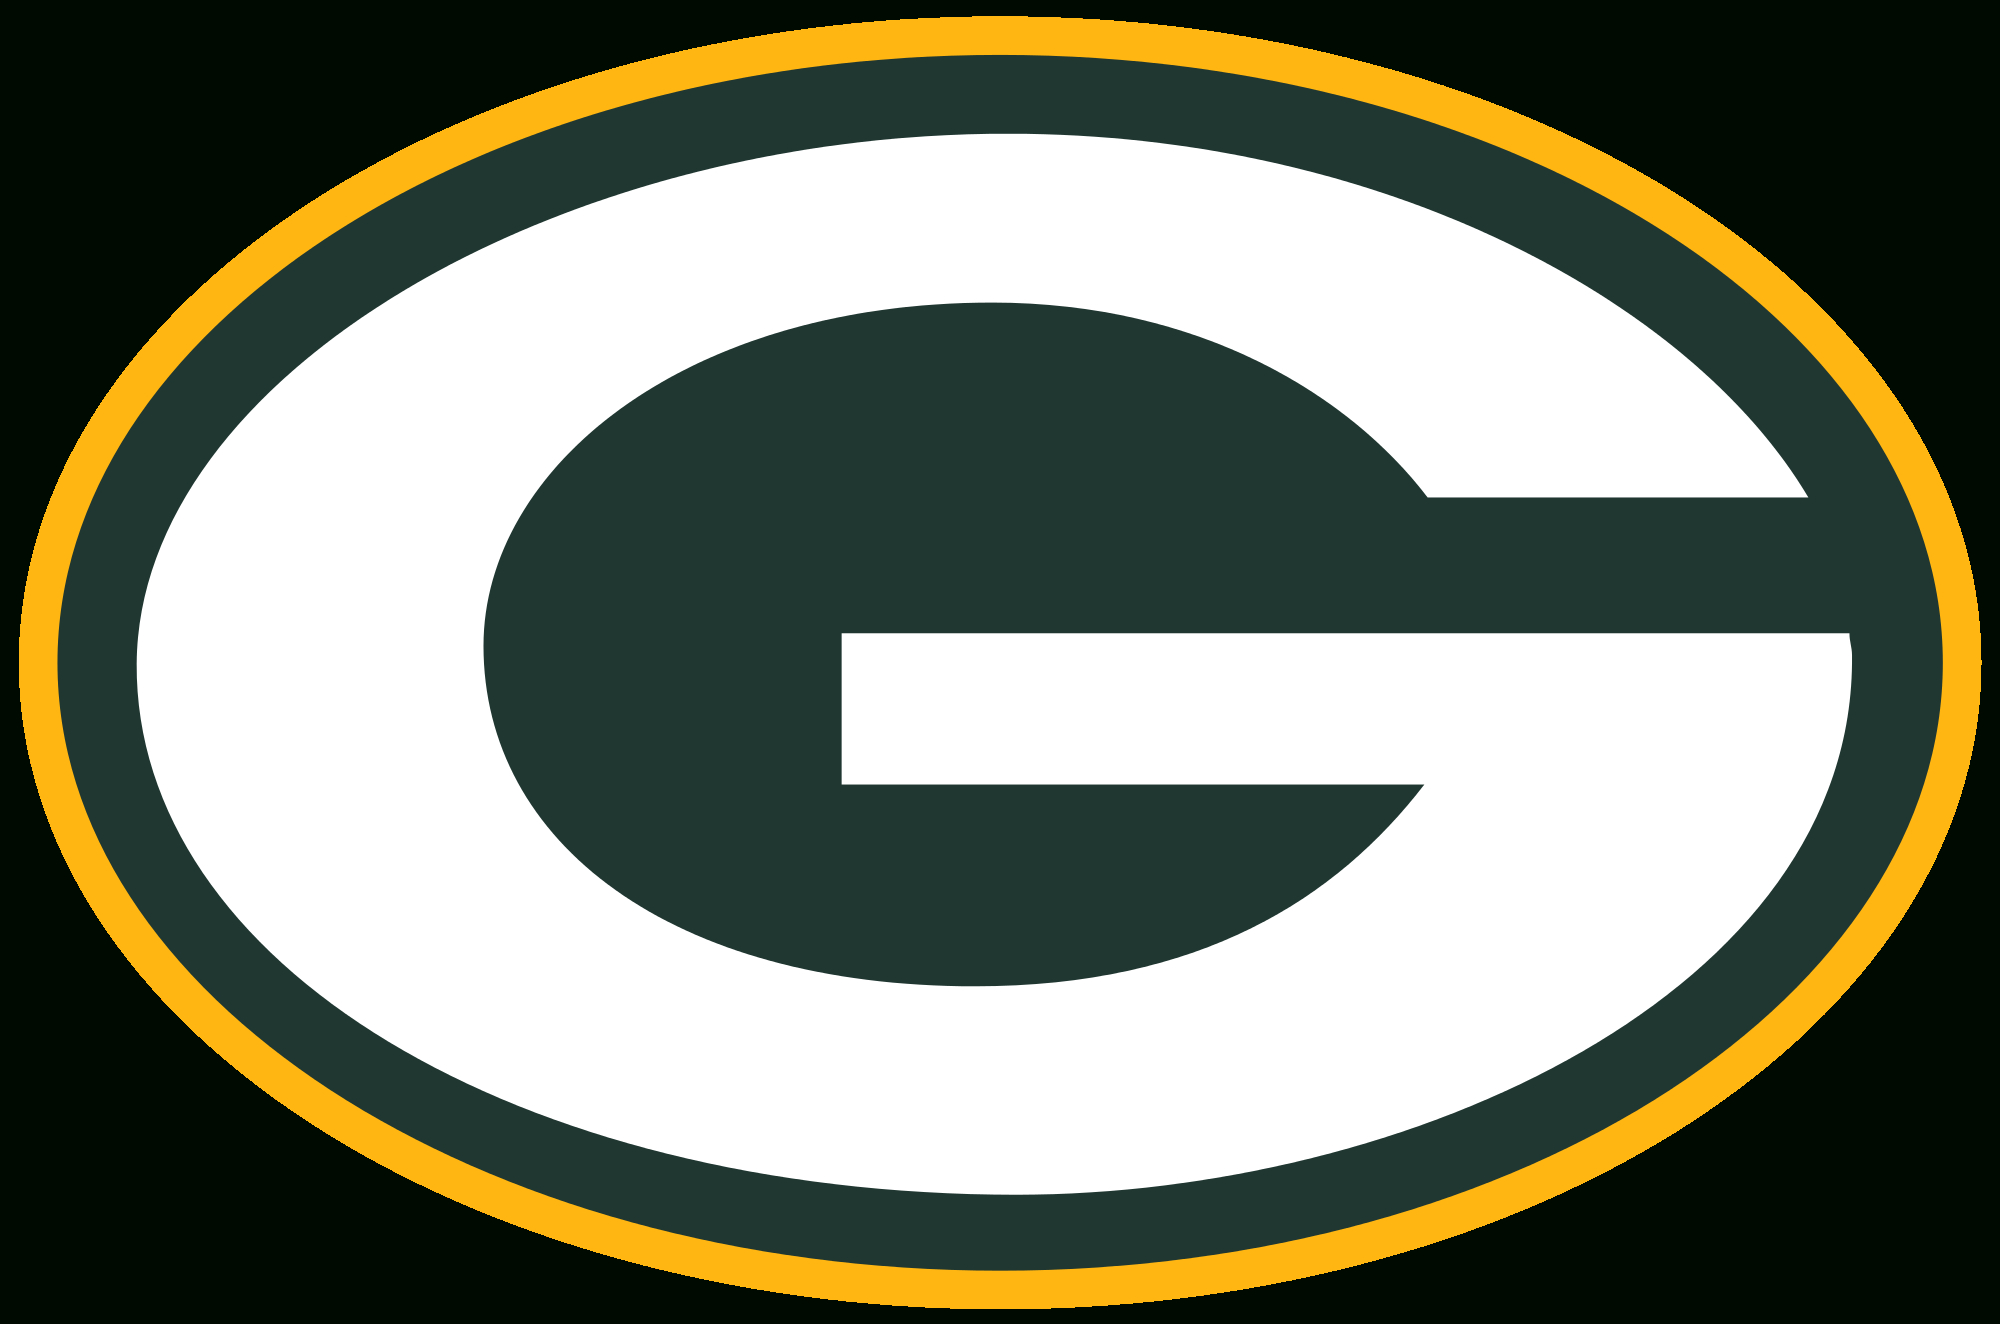 Green Bay Packers Drawing Logo Png Images - Free Printable Green Bay Packers Logo